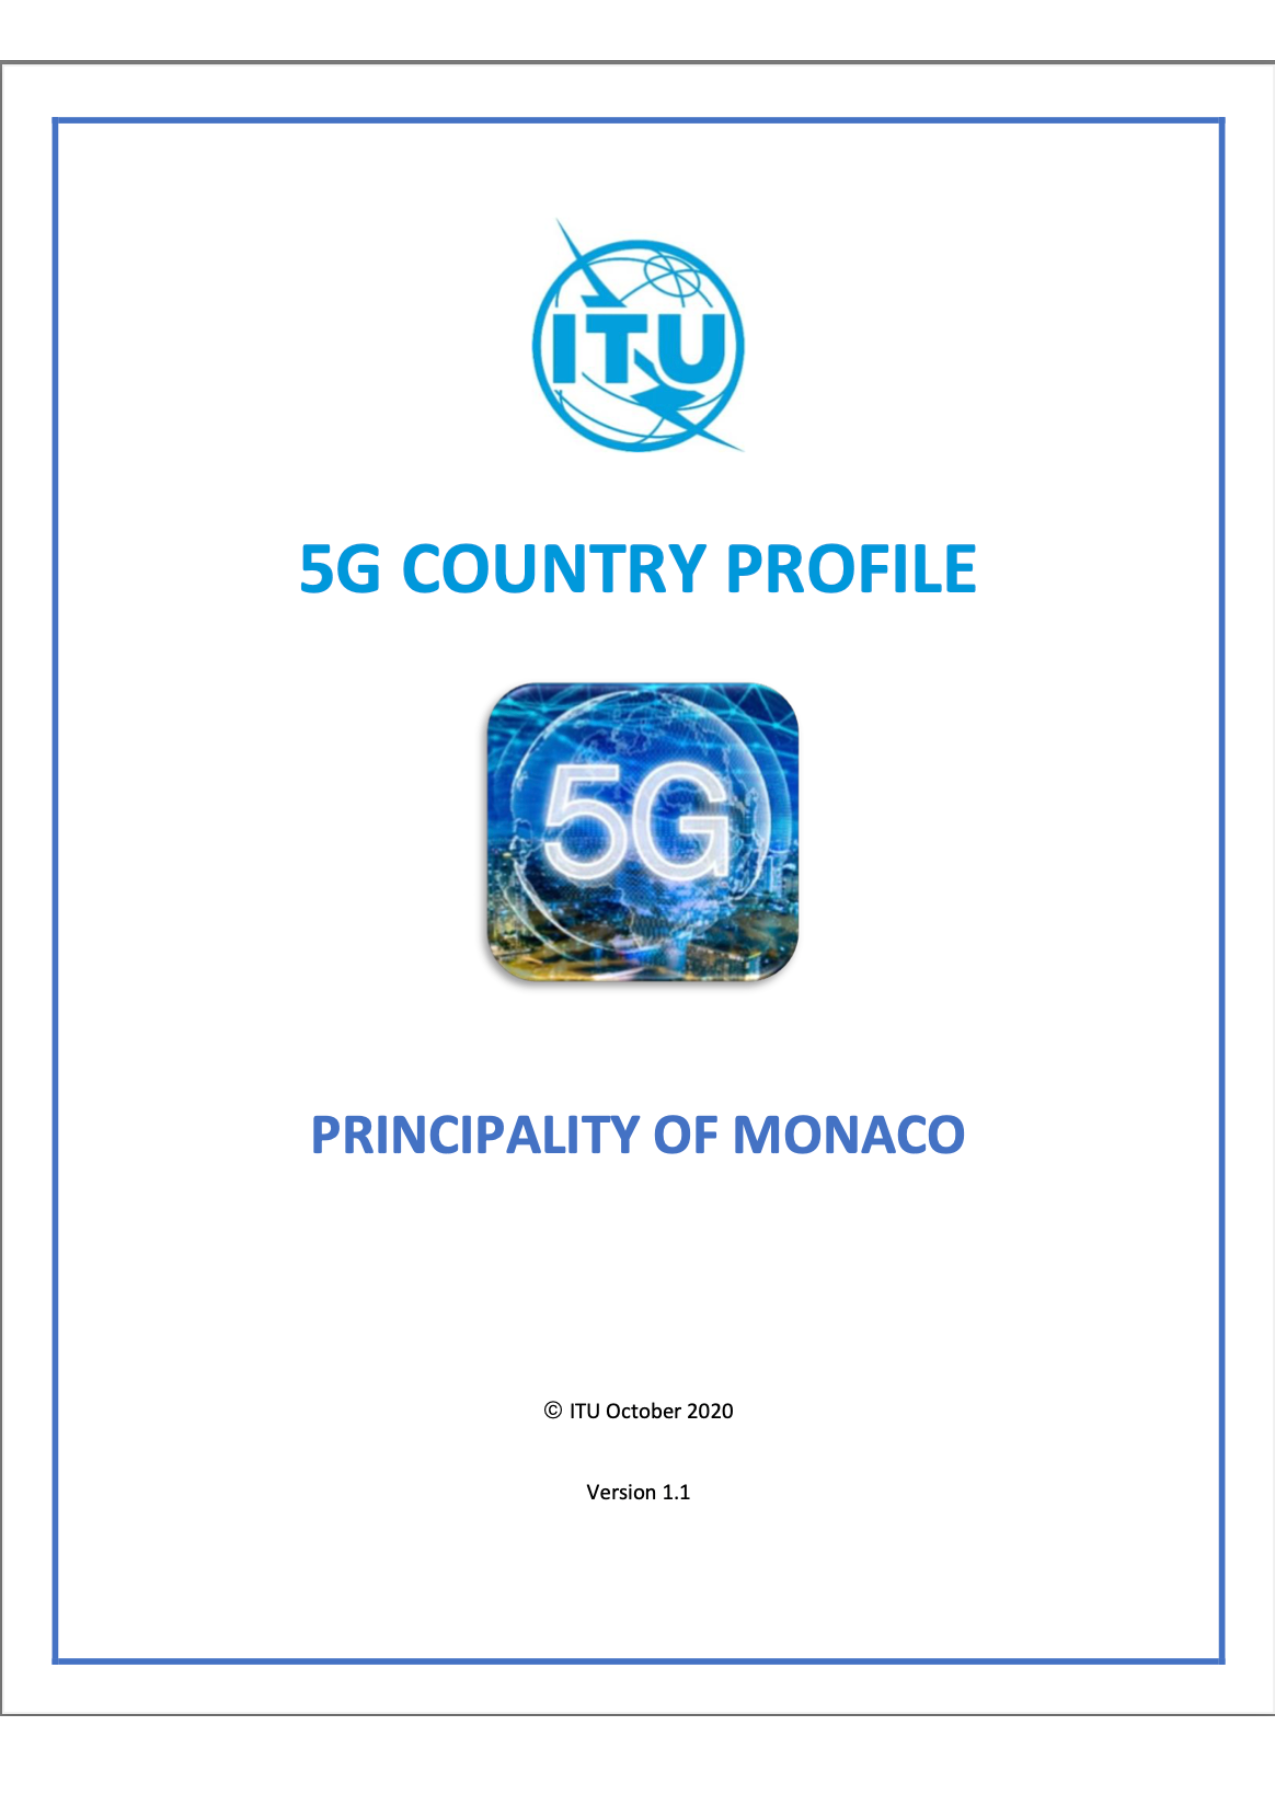 5G COUNTRY PROFILE